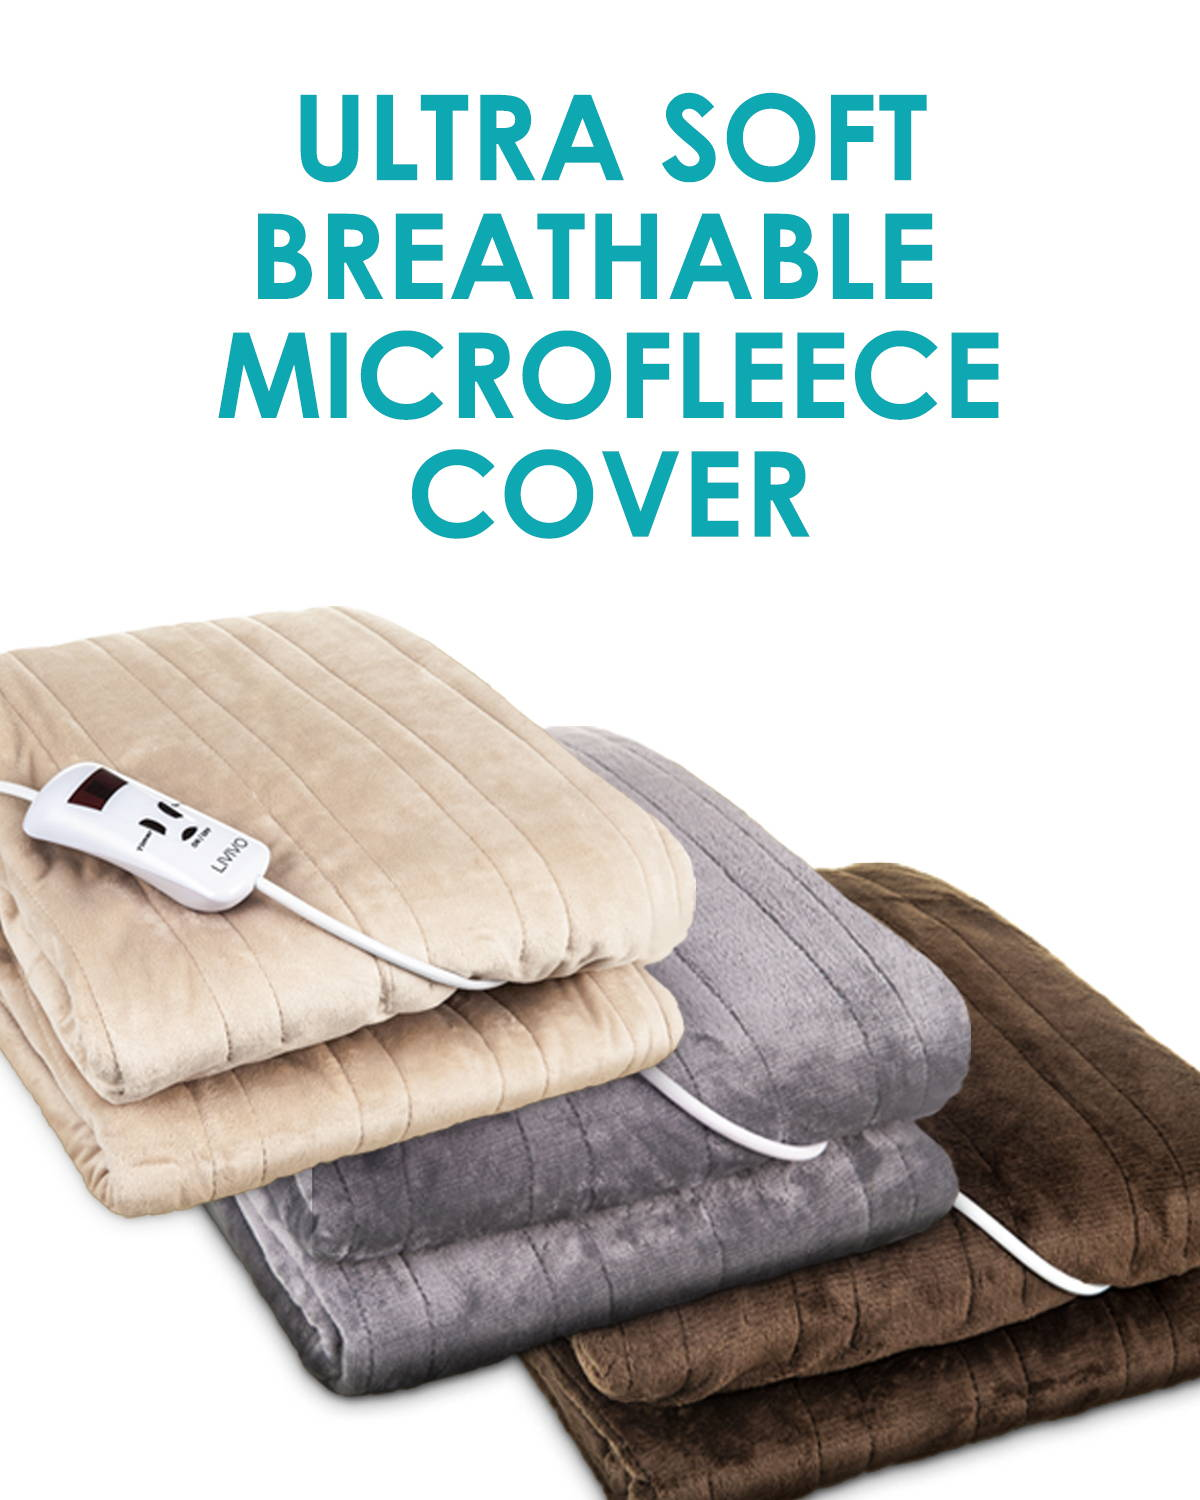 Ultra Soft Breathable Microfleece Cover